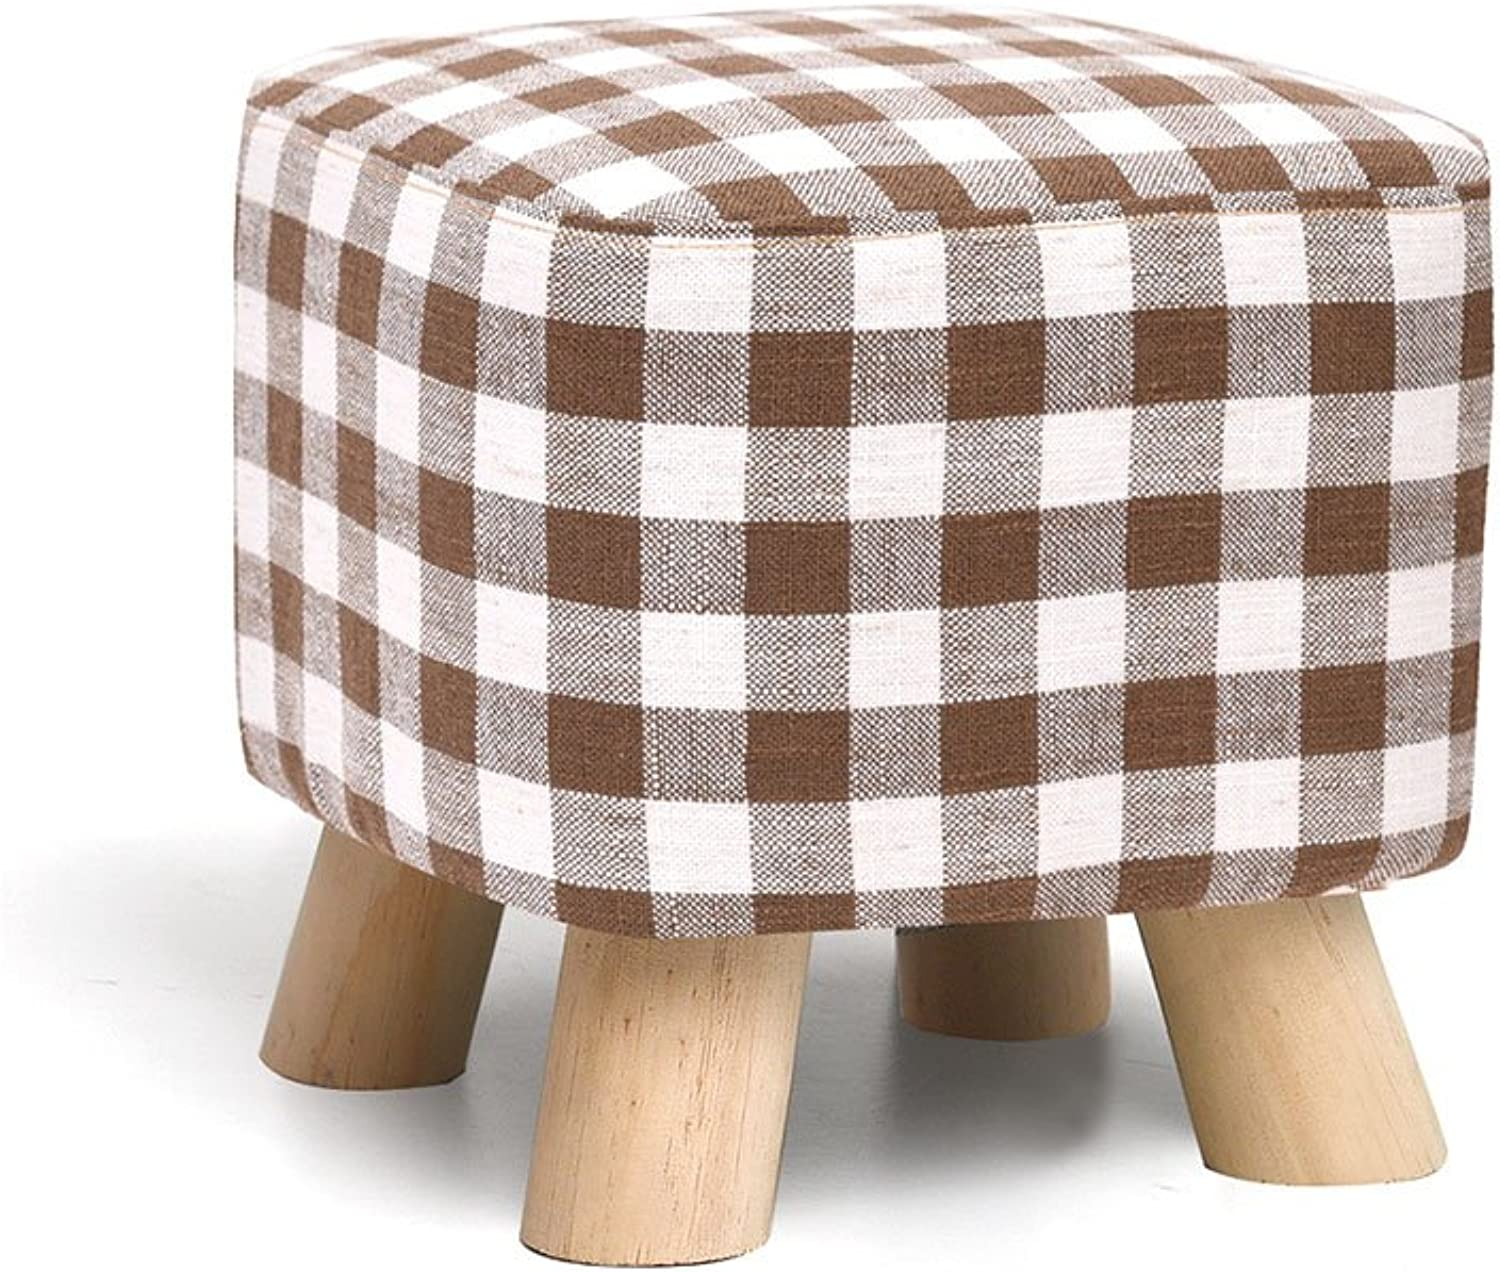 Creativity Square Stool Solid Wood shoes Bench Cloth Art Sofa Stool Coffee Table Bench Household Low Stool 4 Styles(28cmX25cm) Sturdy and Beautiful (color   C)